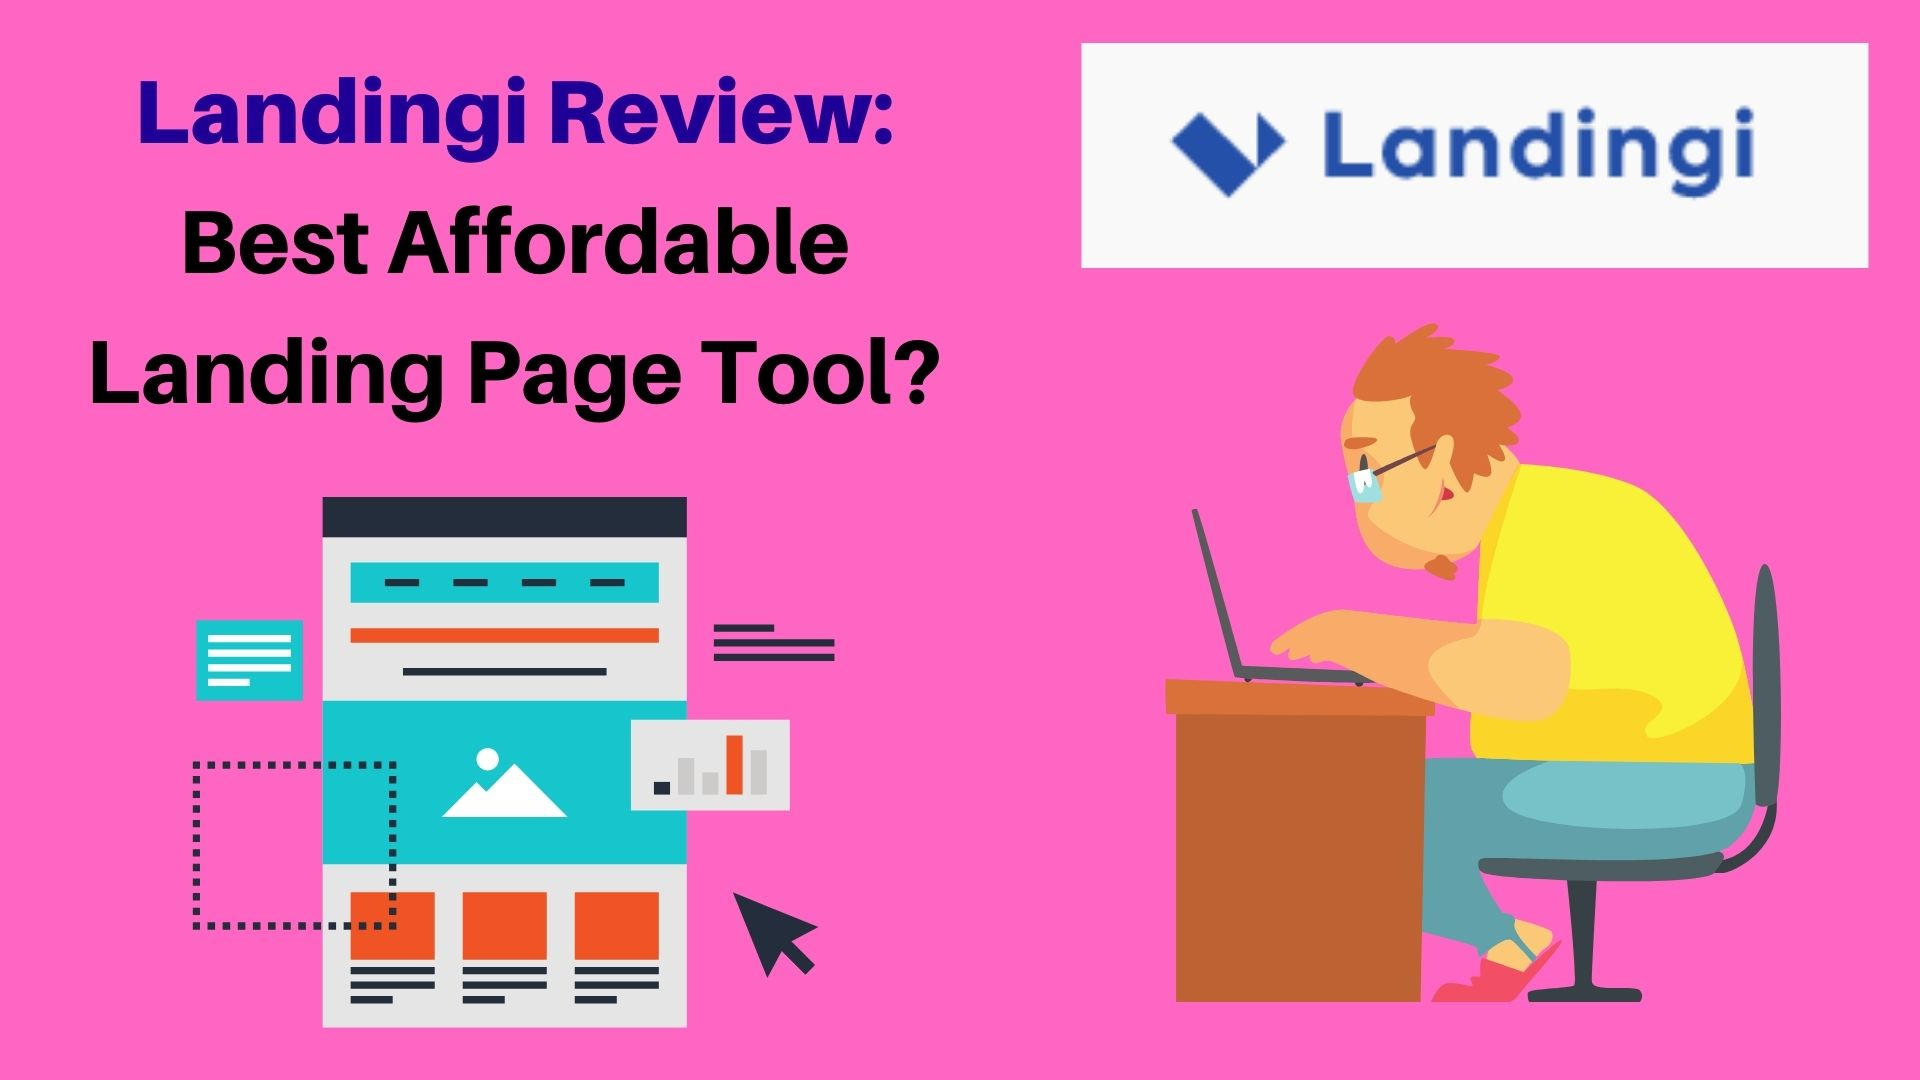 Landingi review: Is it worth it?